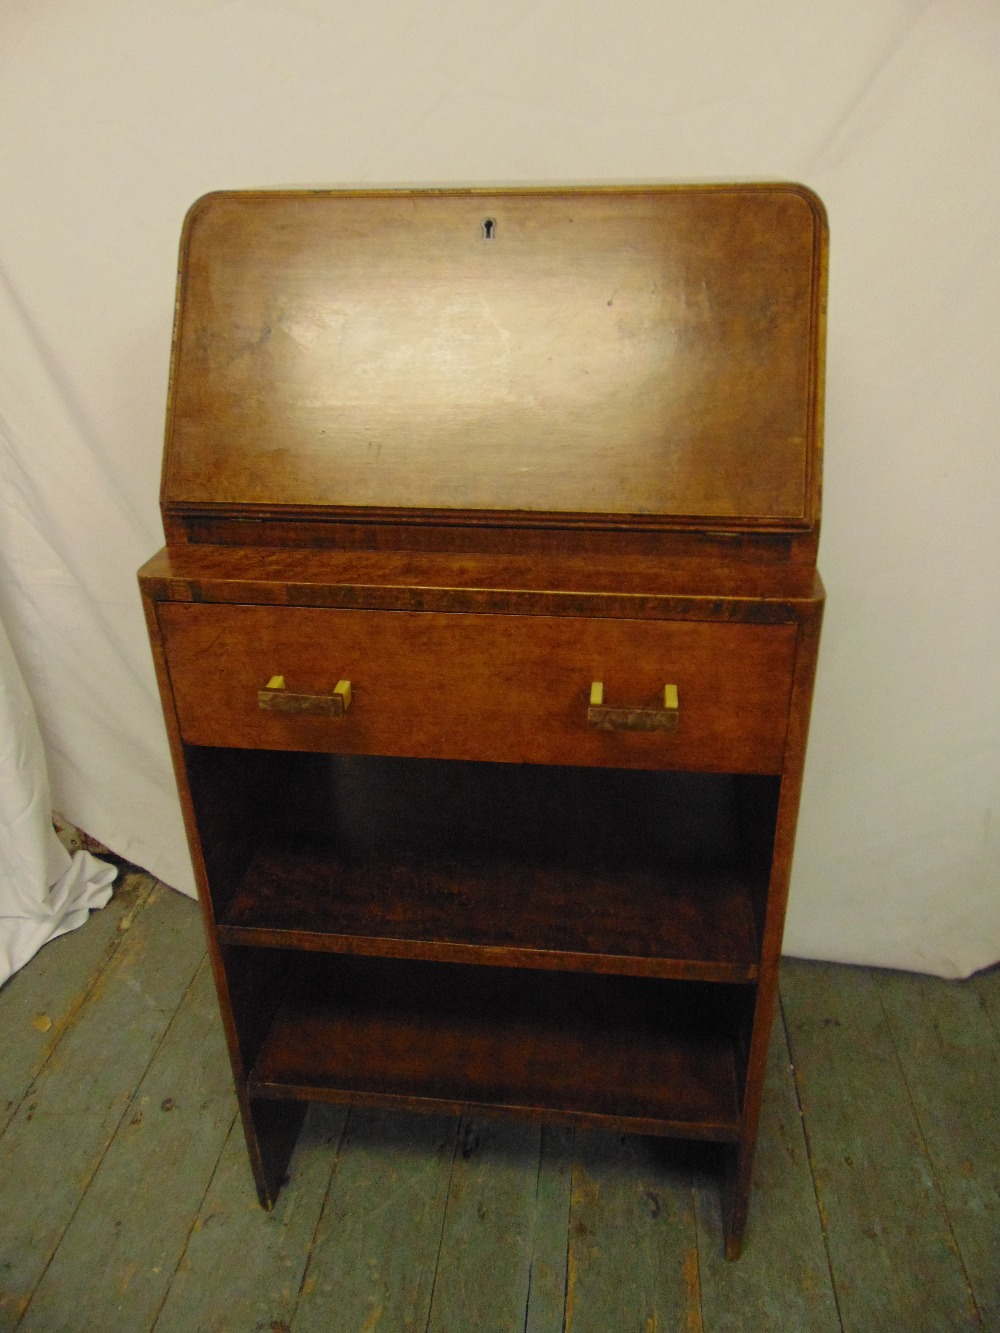 Lot 4 - An Art Deco burr maple rectangular bureau with hinged desk pad opening to reveal fitted interior